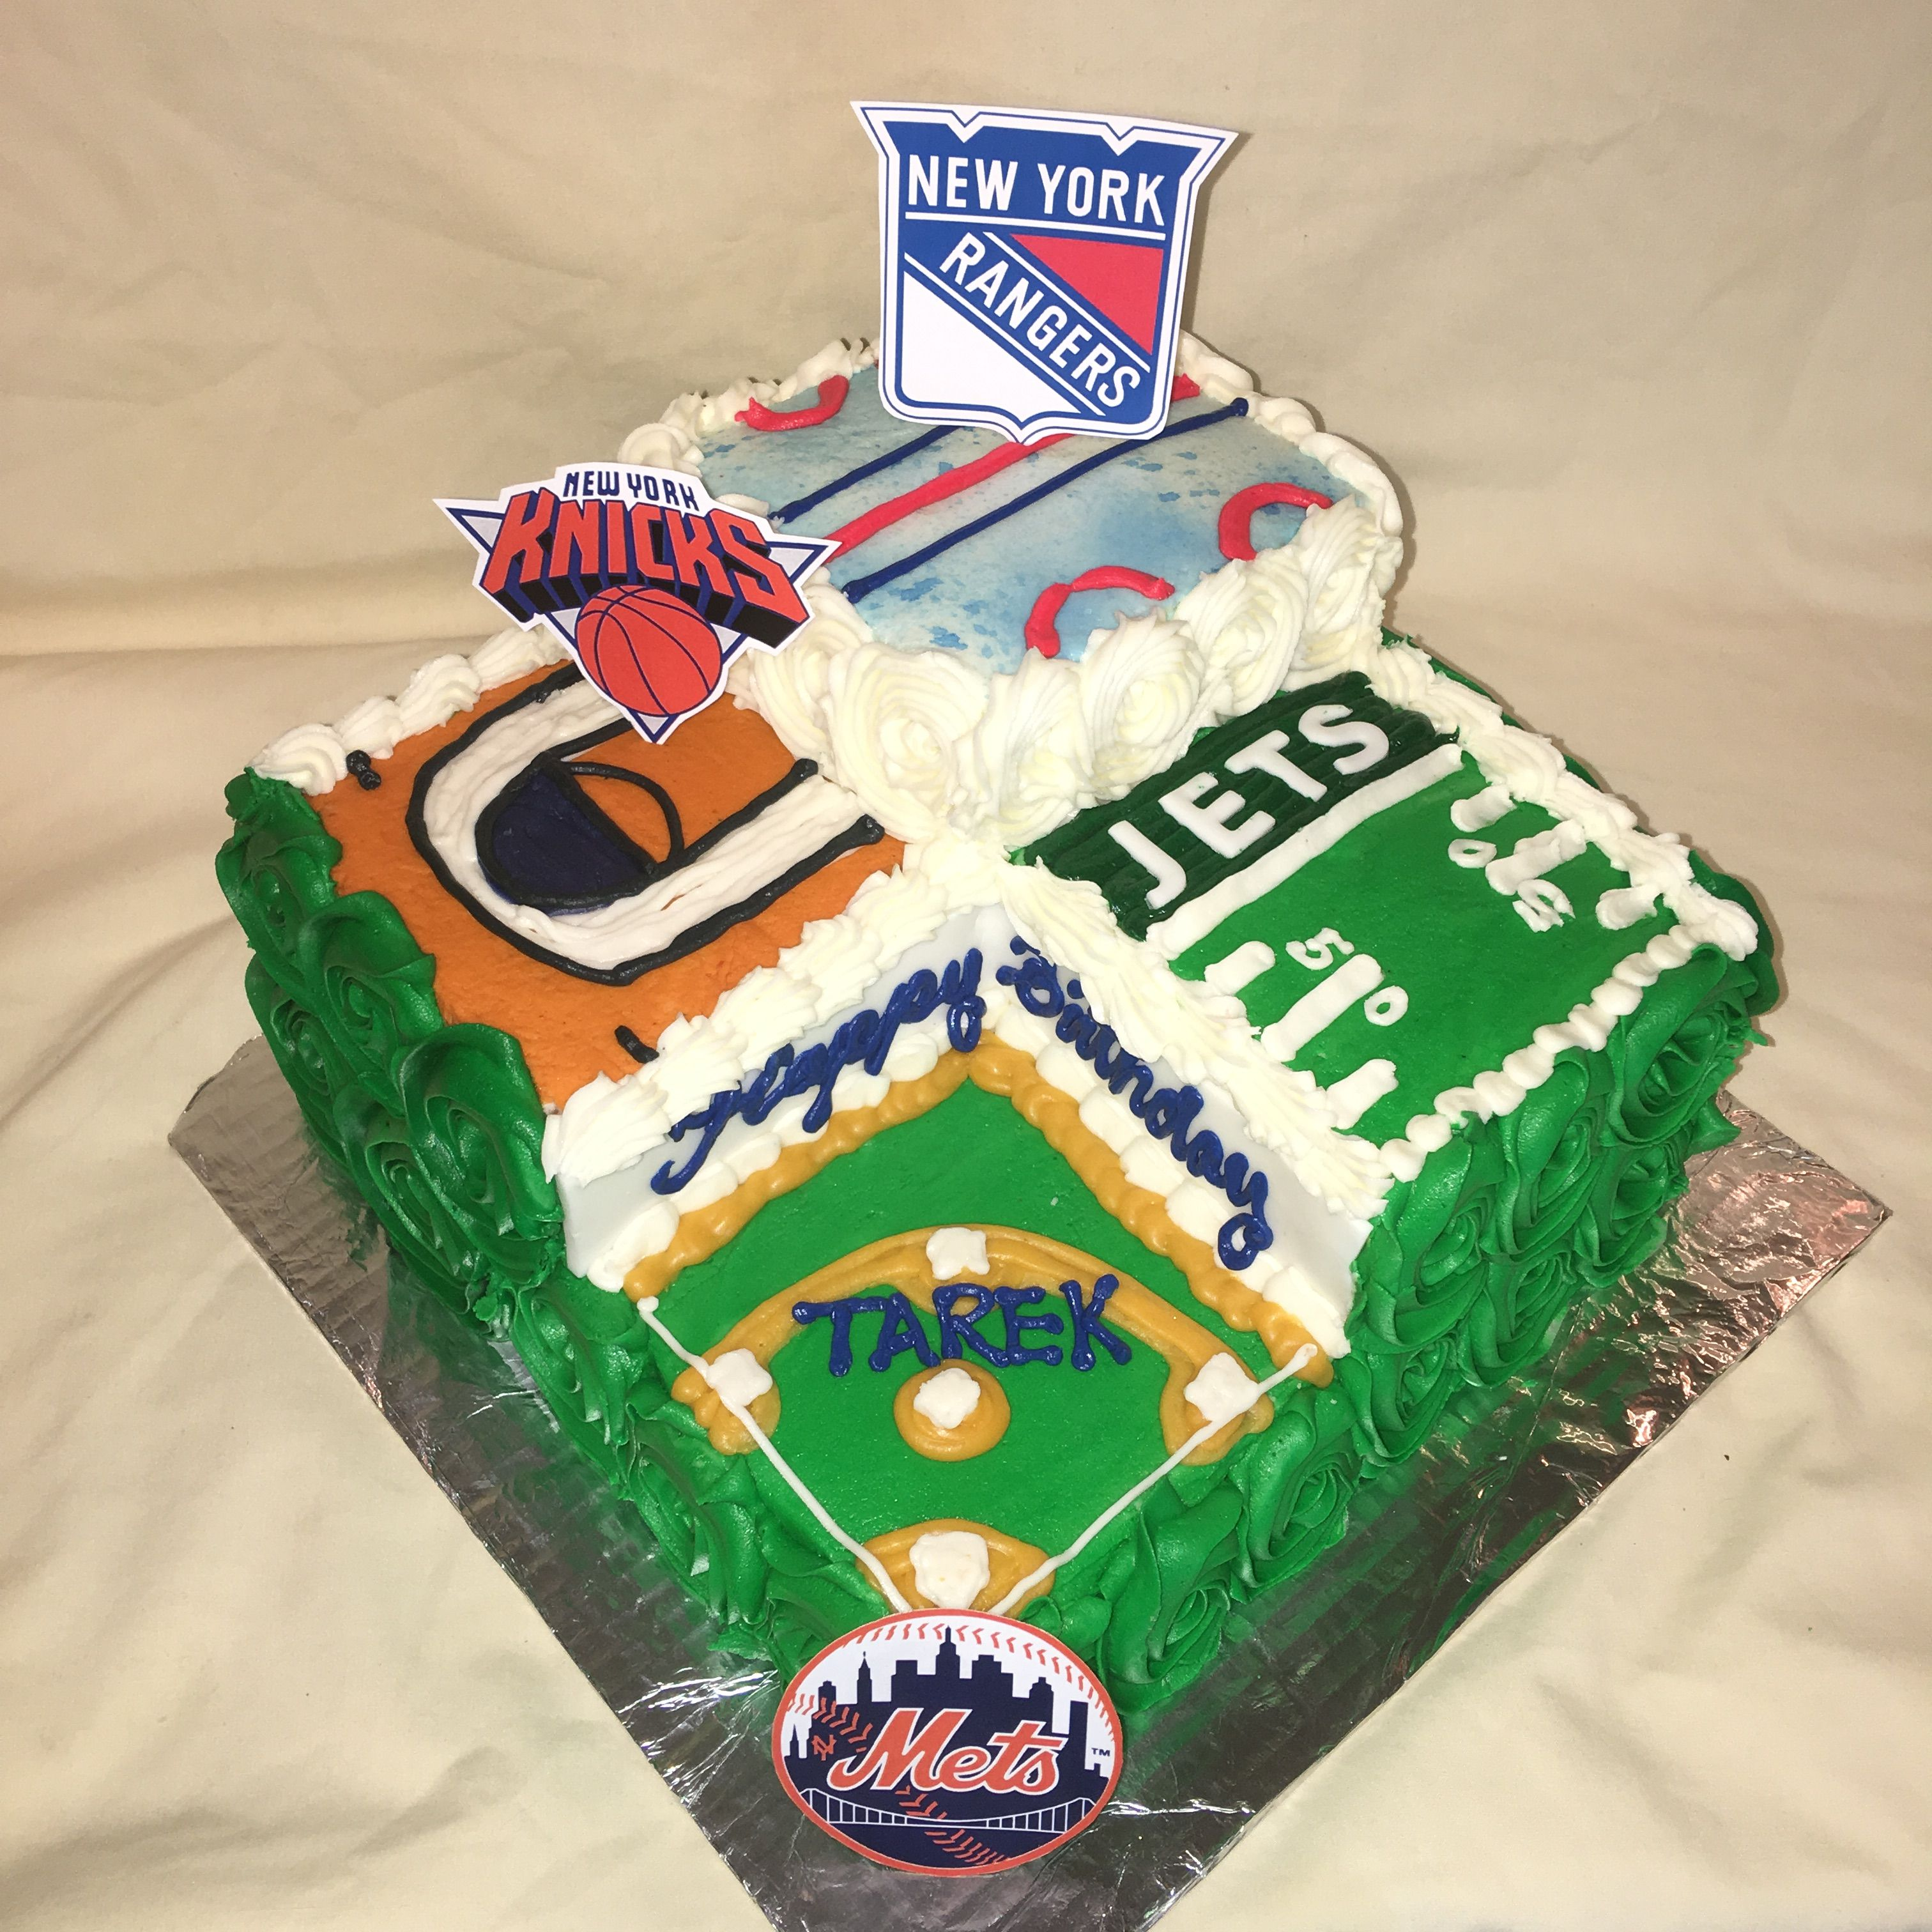 Ny Mets Jets Knicks Rangers Multi Sports Birthday Cake By Inphinity